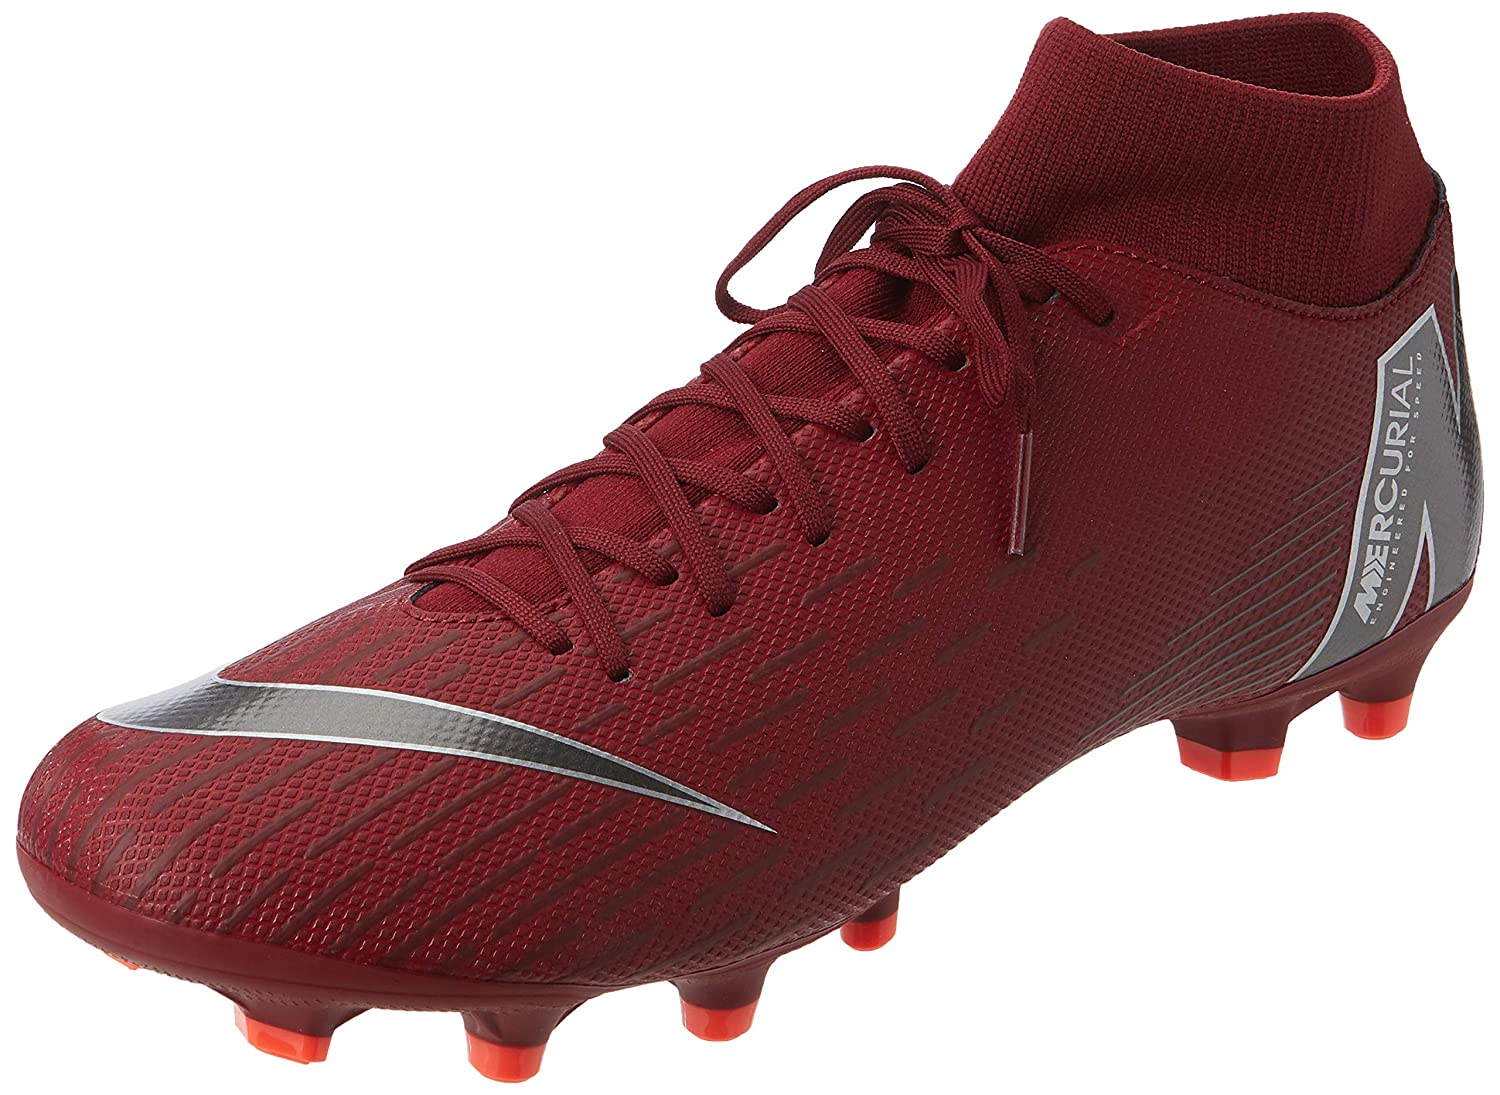 83d7e397827 Amazon.com  Nike Mercurial Superfly 6 Academy MG Soccer Cleat  Shoes